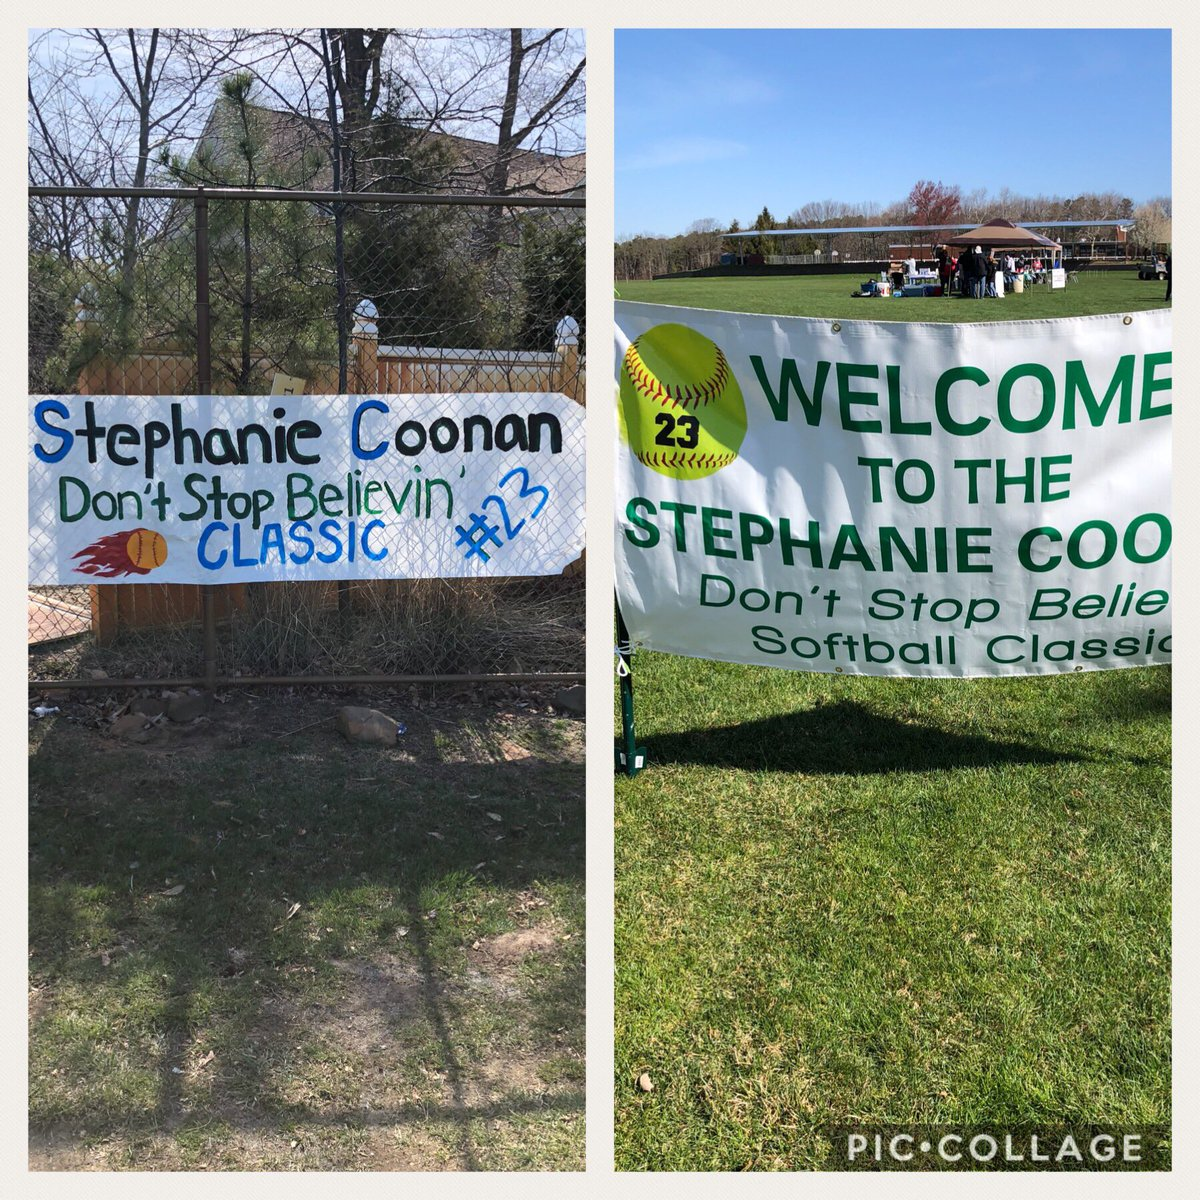 Looking forward to a great day of softball for an even better cause @RaritanSports ! Come out and support #steph <br>http://pic.twitter.com/IH6ErC3ZJx